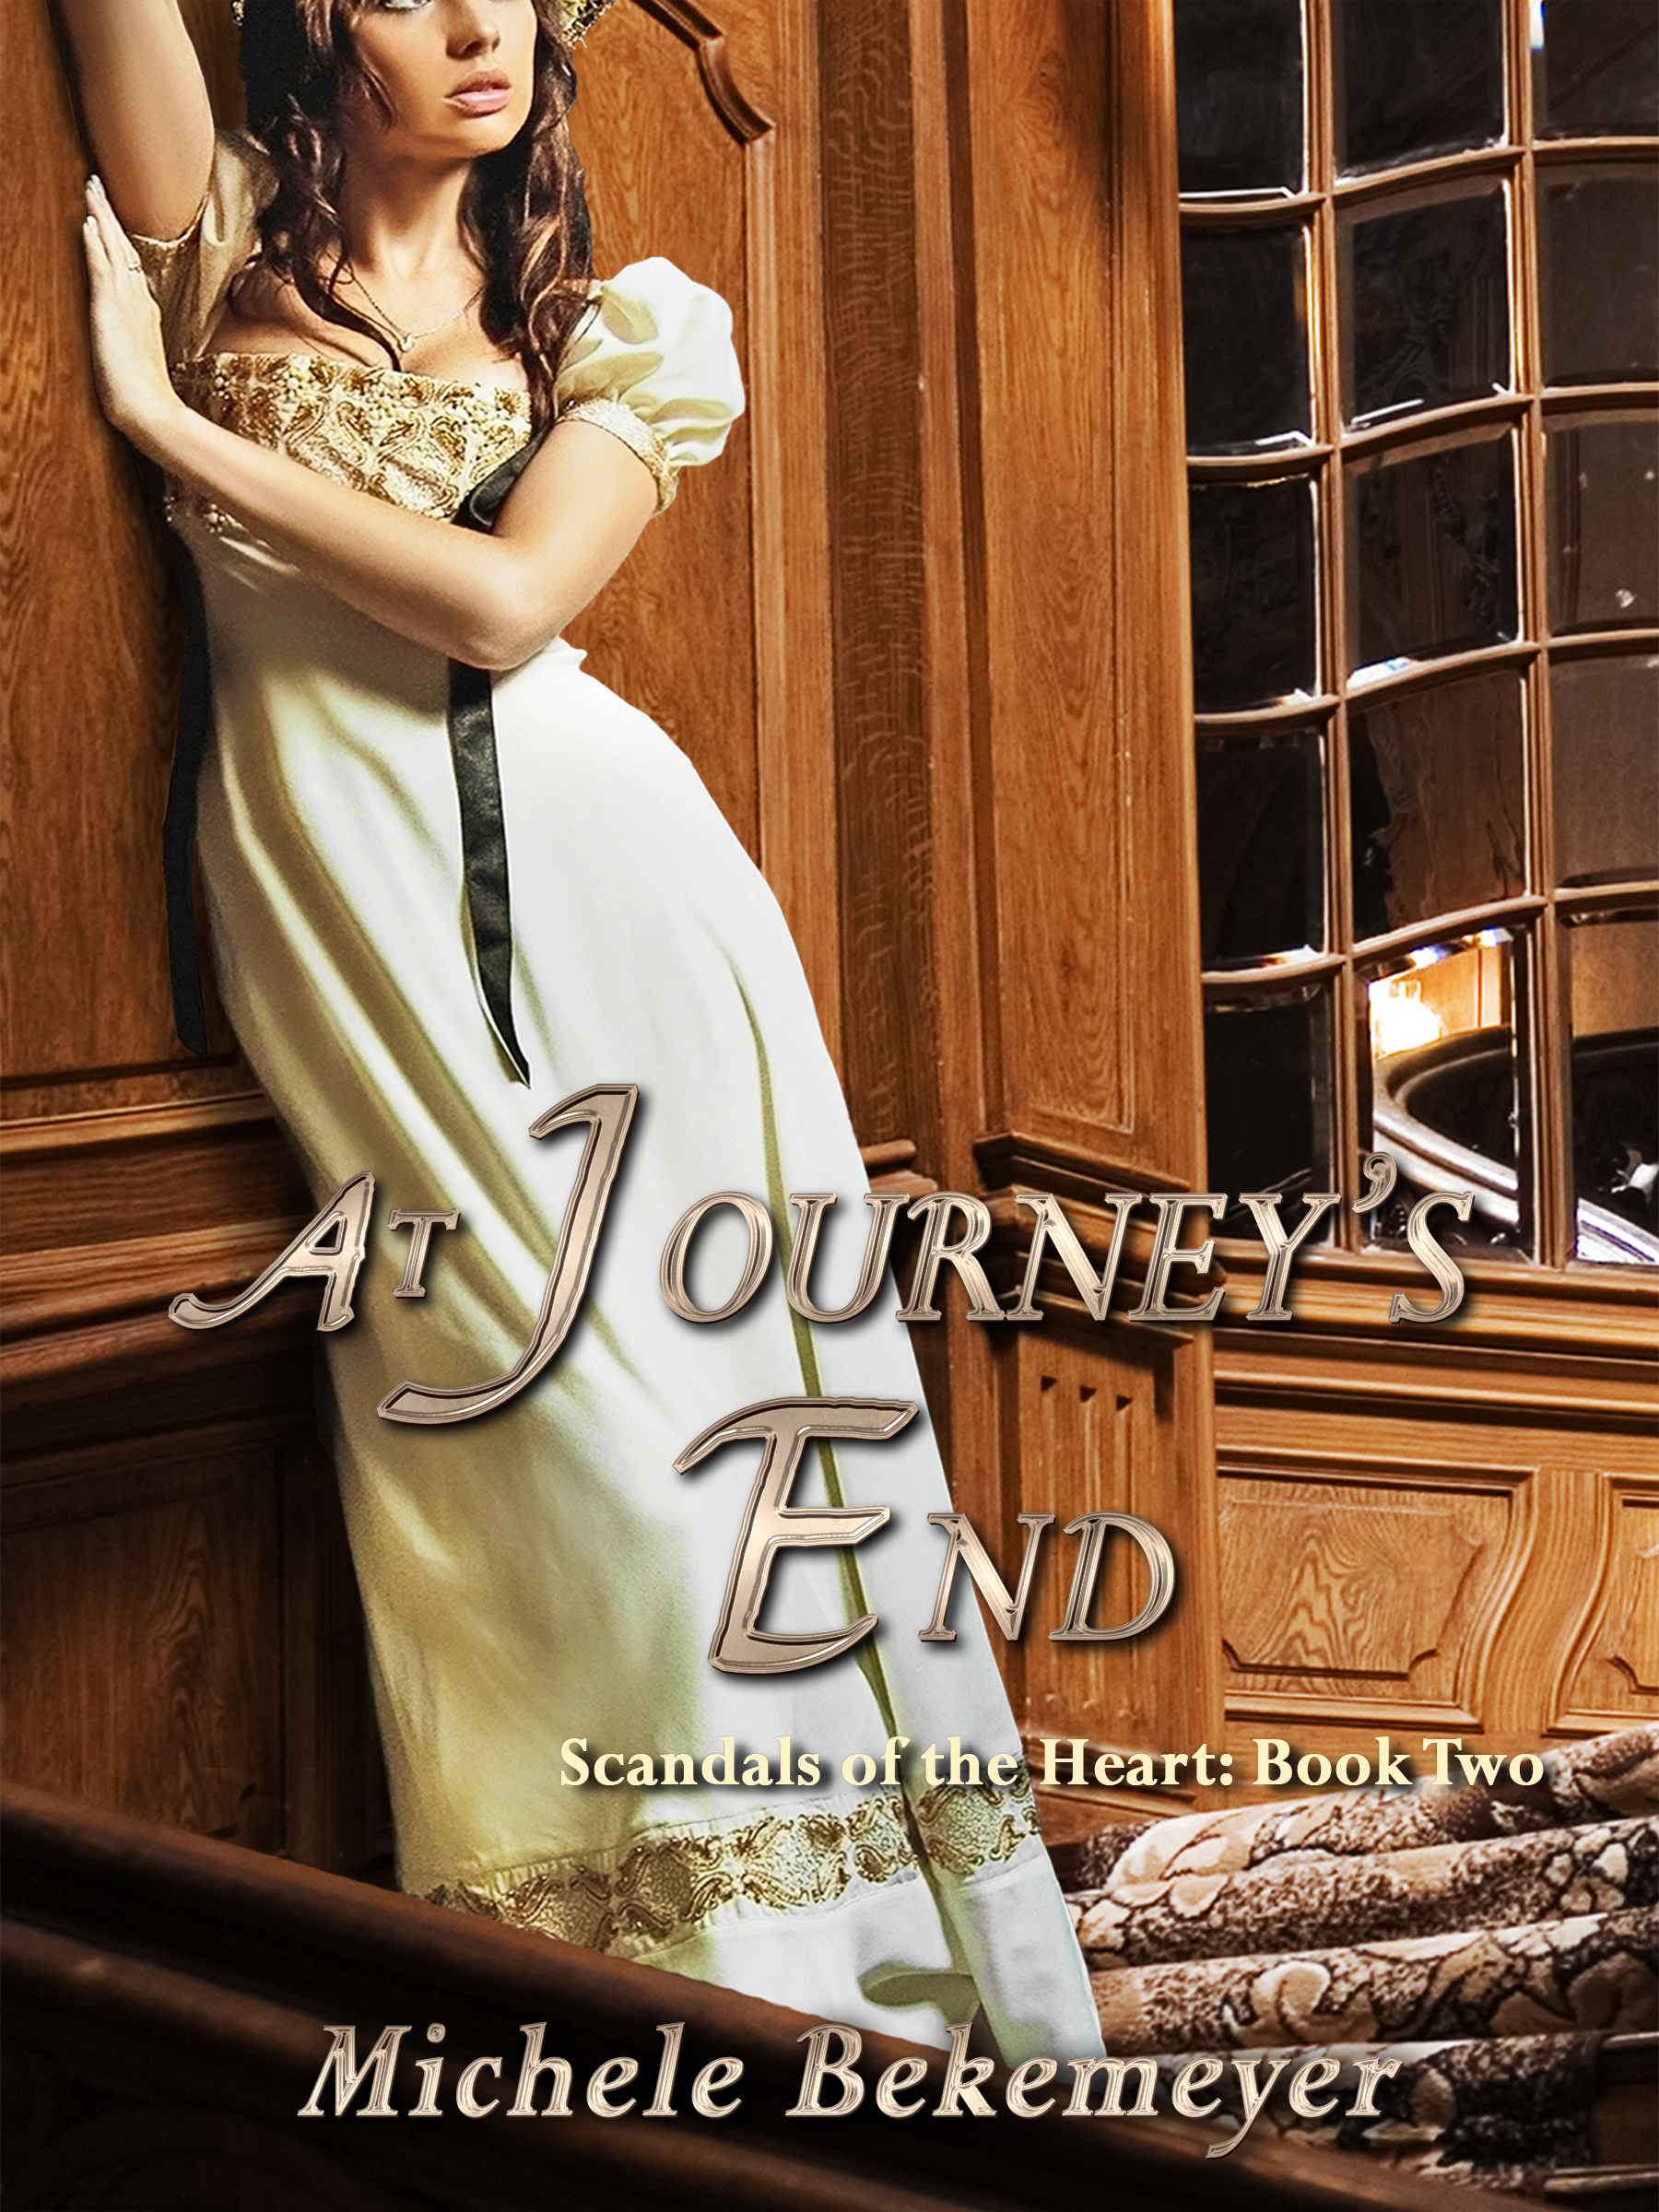 Michele Bekemeyer - At Journey's End